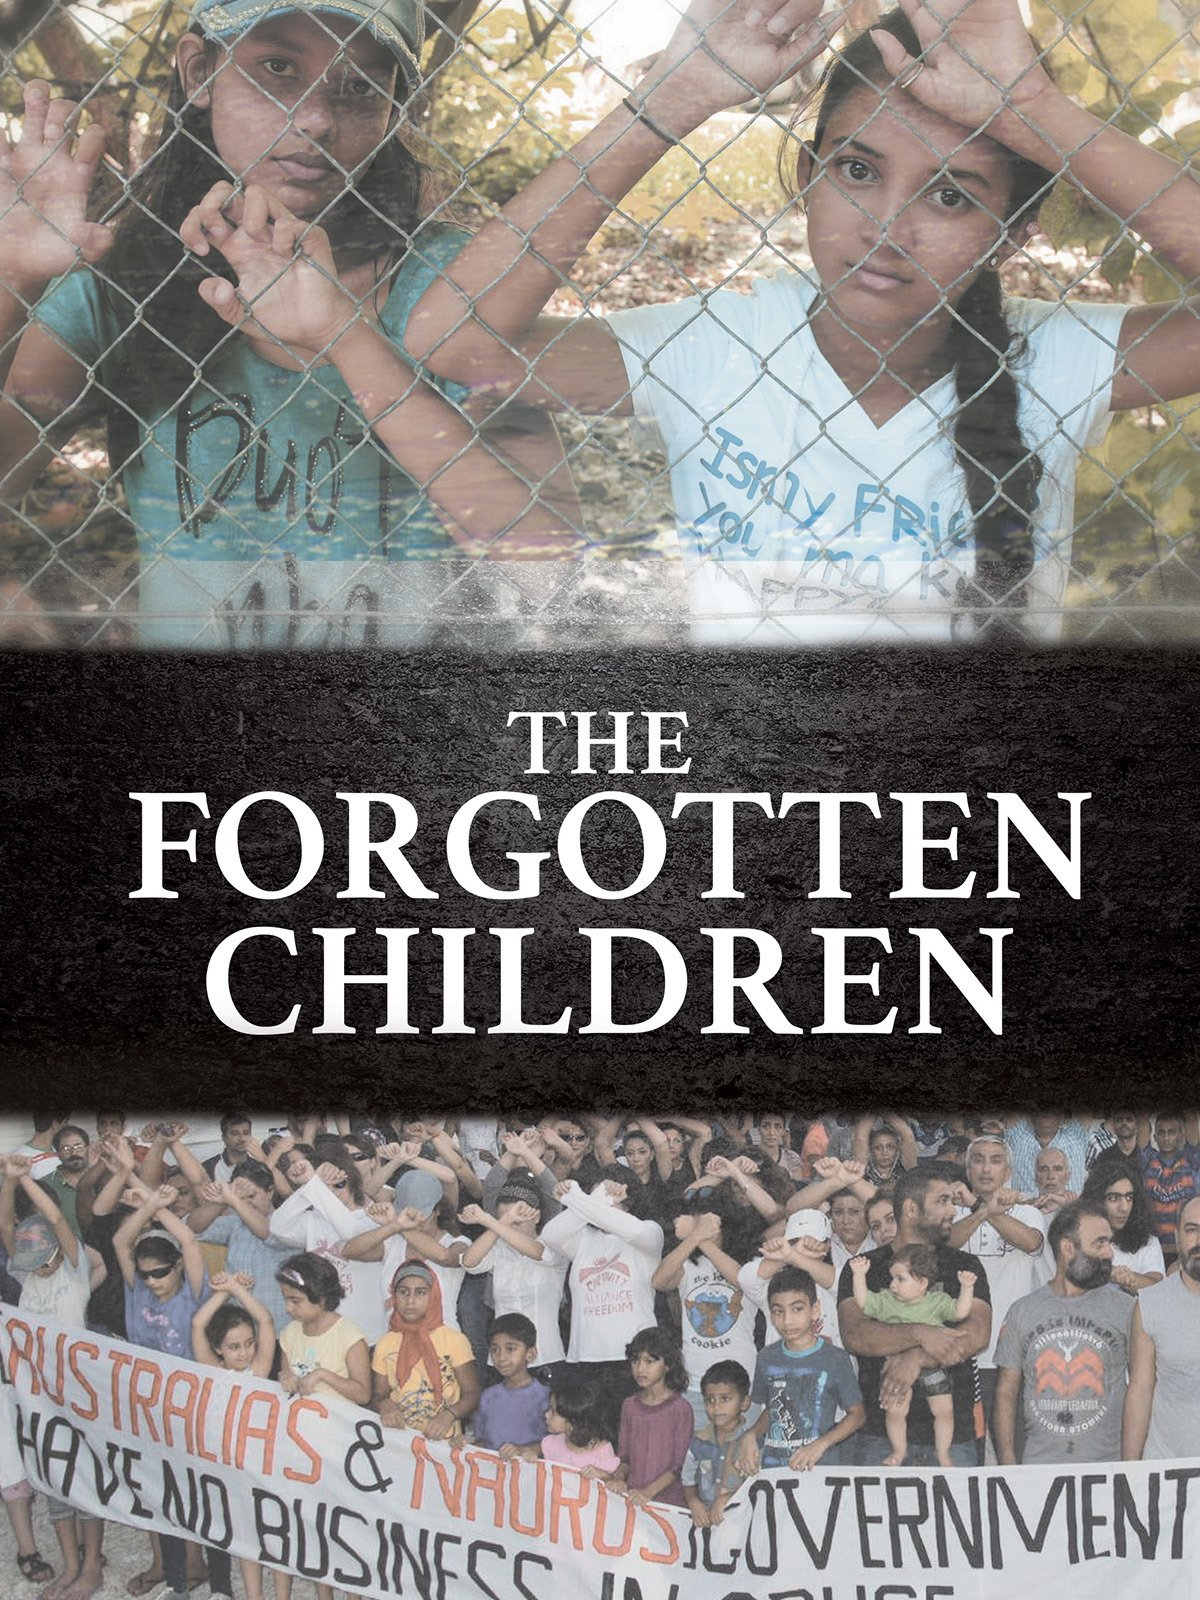 Nauru: The Forgotten Children